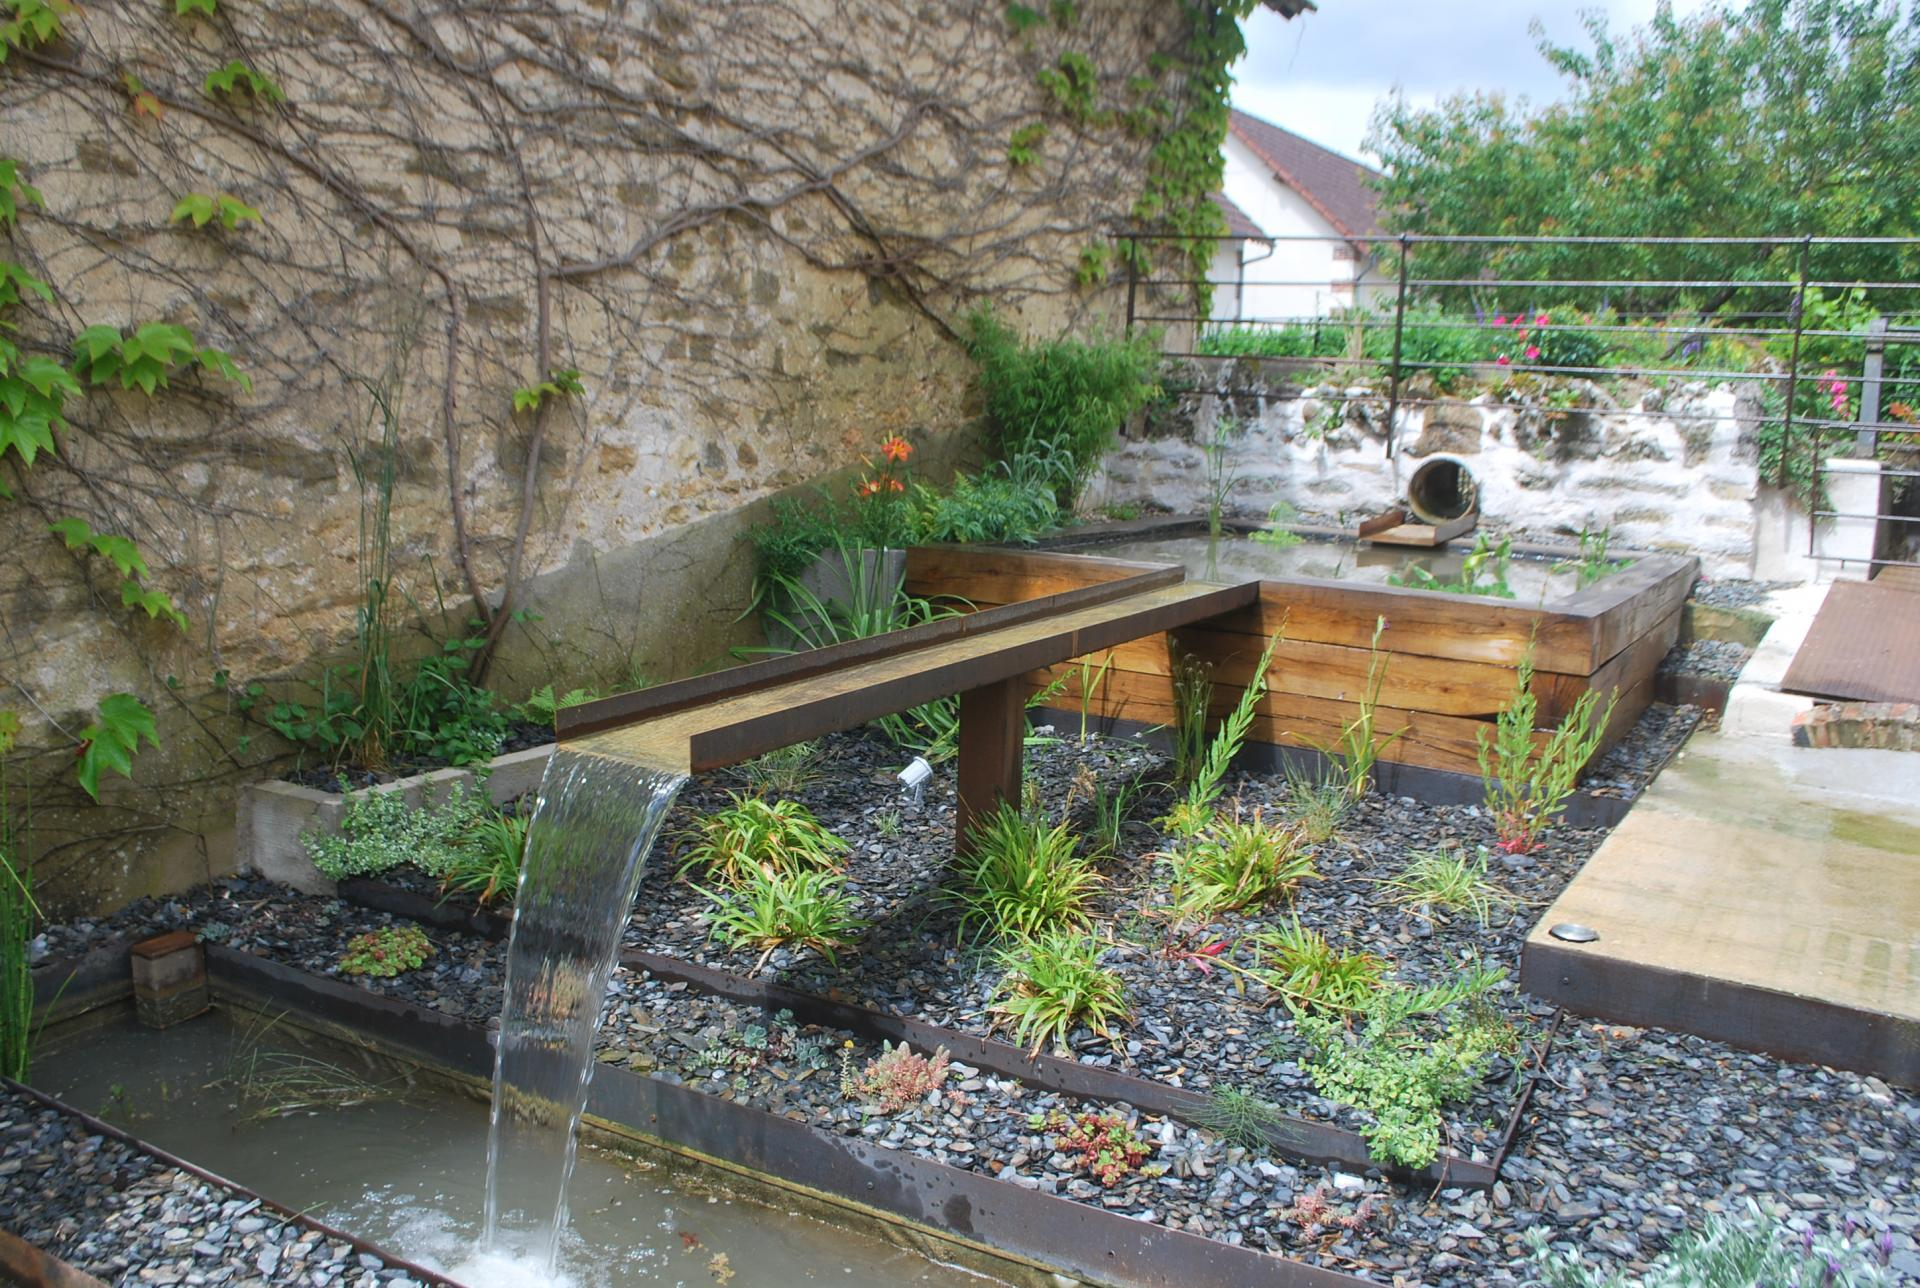 Awesome bassin zen jardin photos - Idee terrasse ...